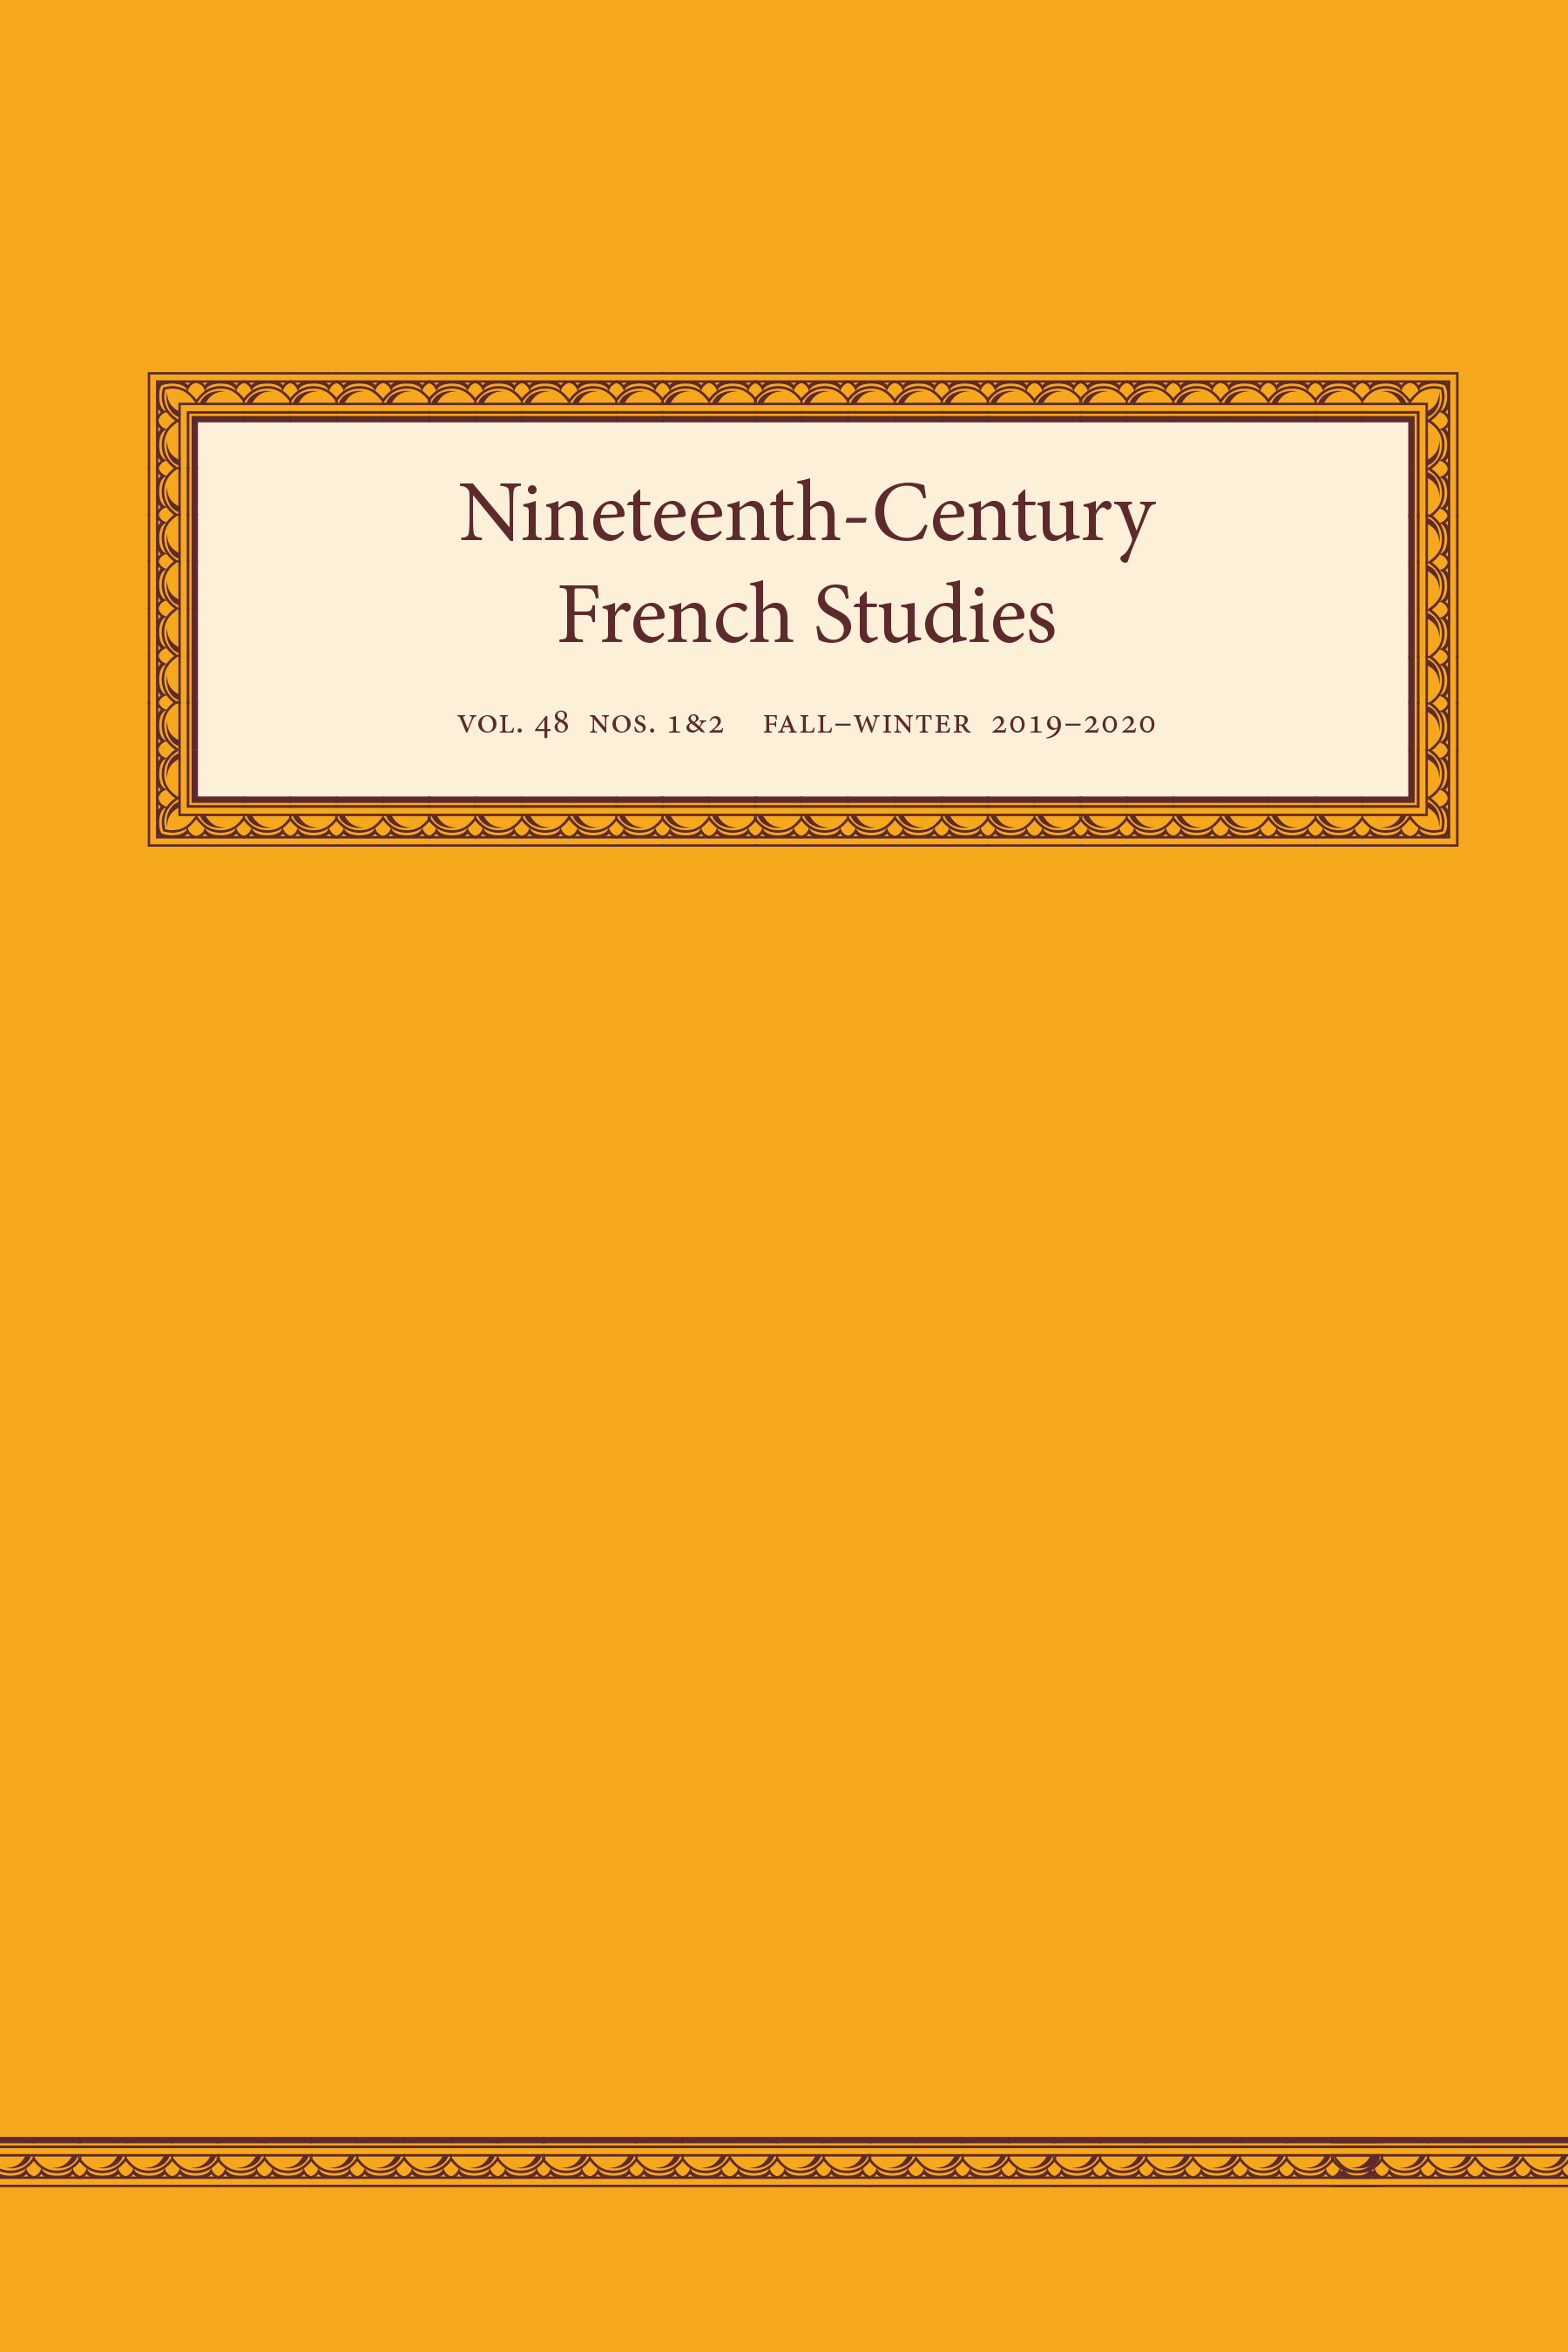 Nineteenth-Century French Studies, vol. 48, nos. 1-2, Fall-Winter 2019-20